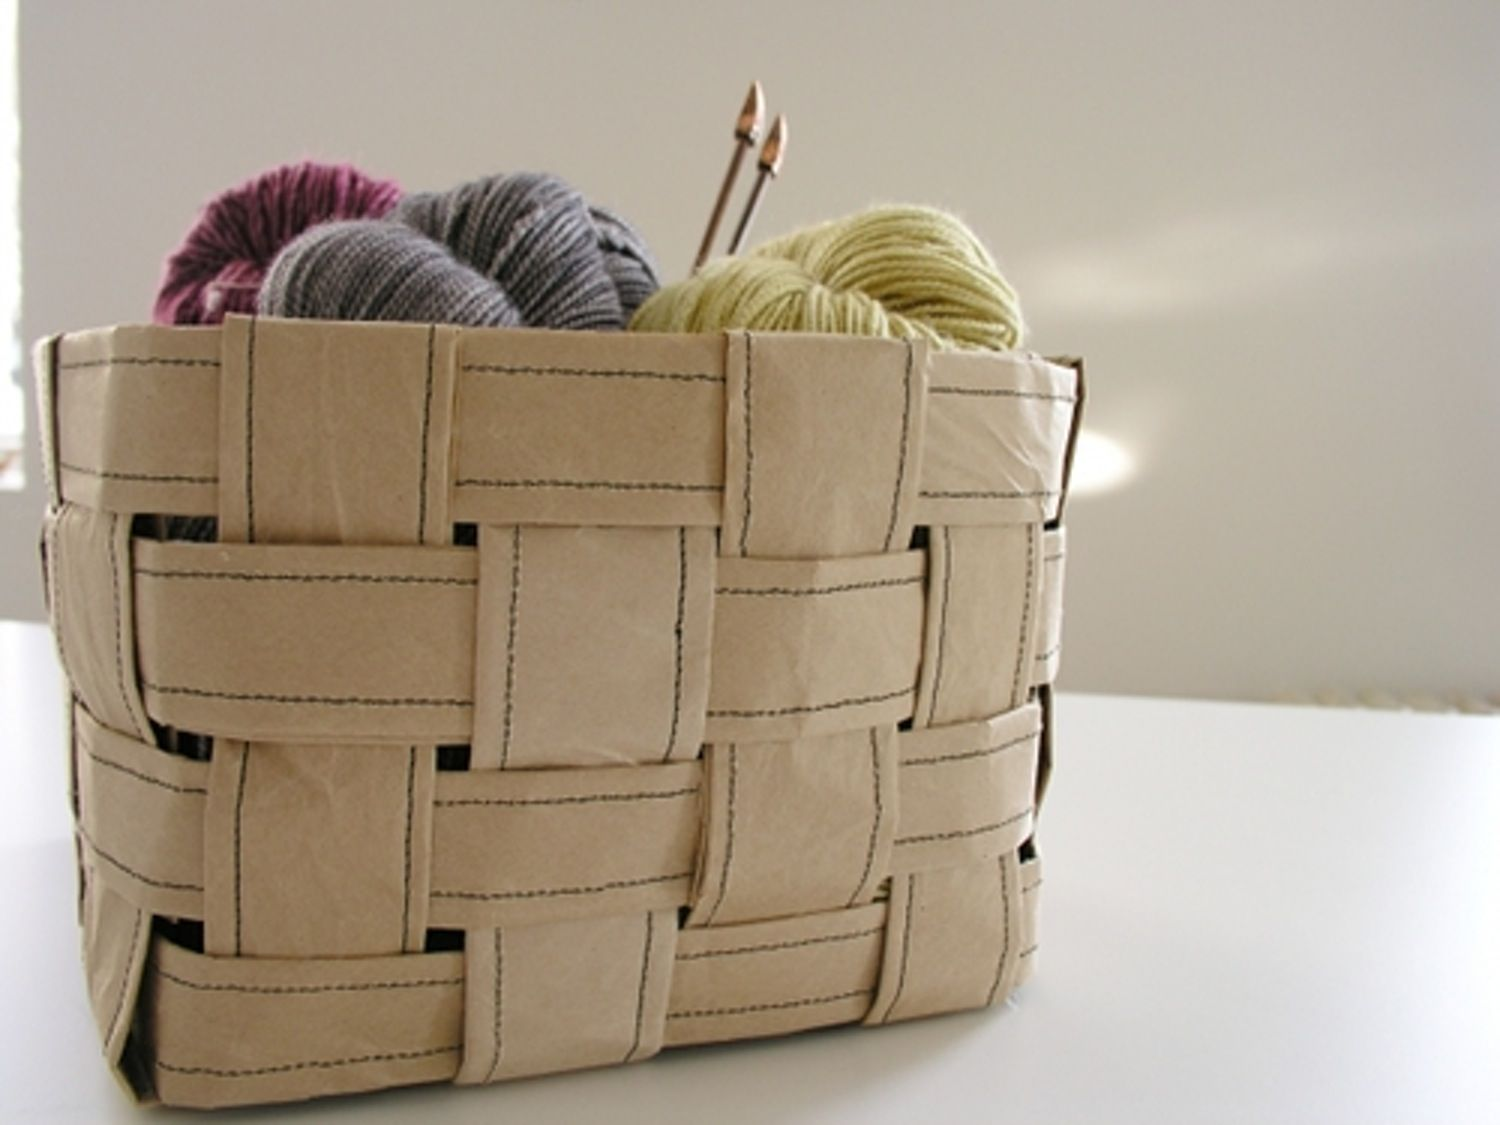 DIY: Recycled Paper Sewing Basket | Paper basket, Recycled ...